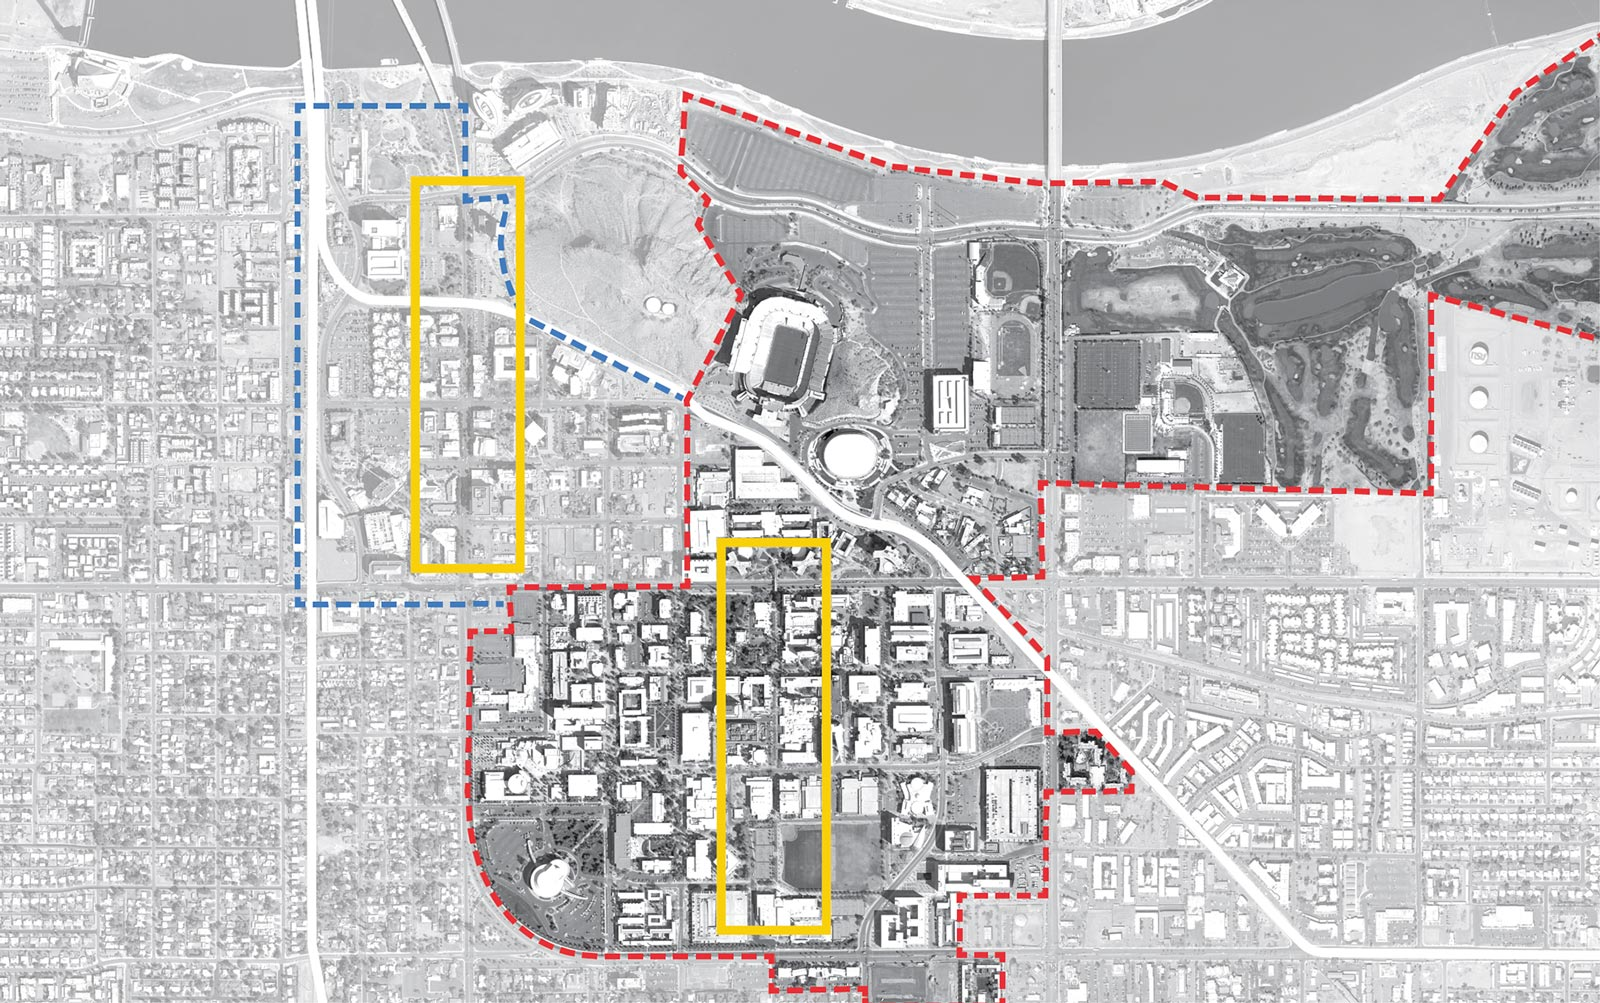 Aerial map highlighting the two primary pedestrian paths at Mill Avenue and Palm Walk for integrating PEP shade canopy